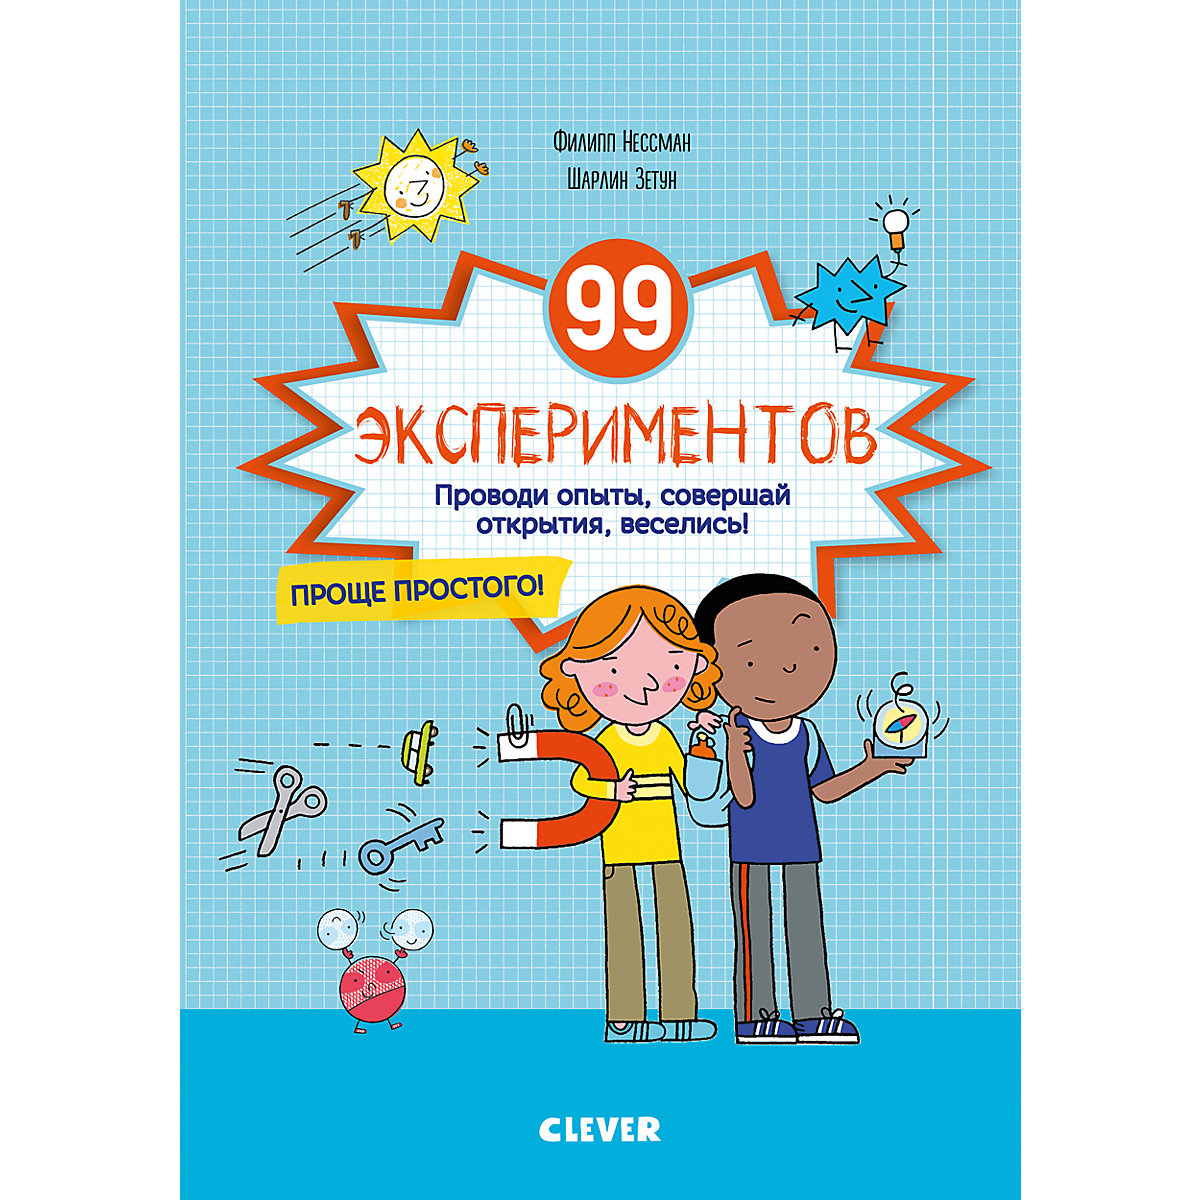 Books CLEVER 10078087 Children Education Encyclopedia Alphabet Dictionary Book For Baby